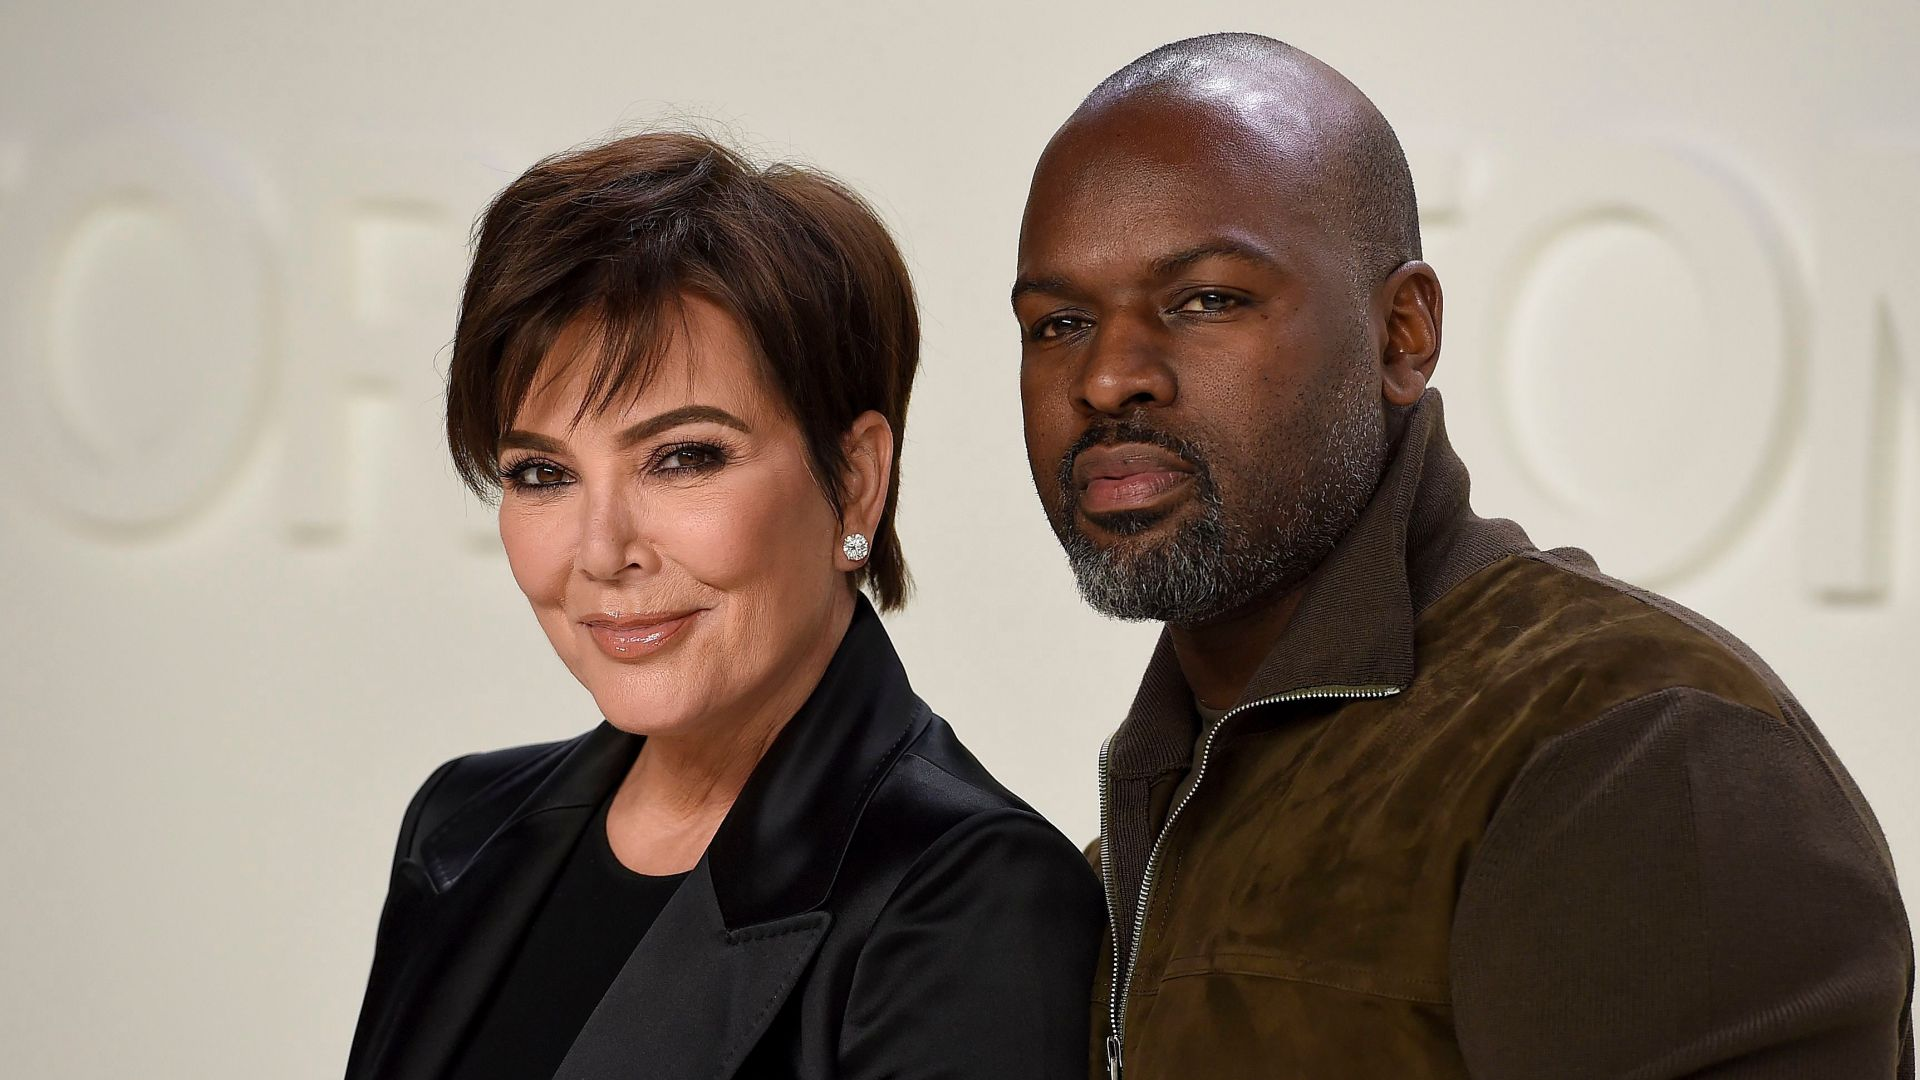 Corey Gamble Says Not Being Able to Have Sex With Kris Jenner Is Like 'Jail' on 'KUWTK'